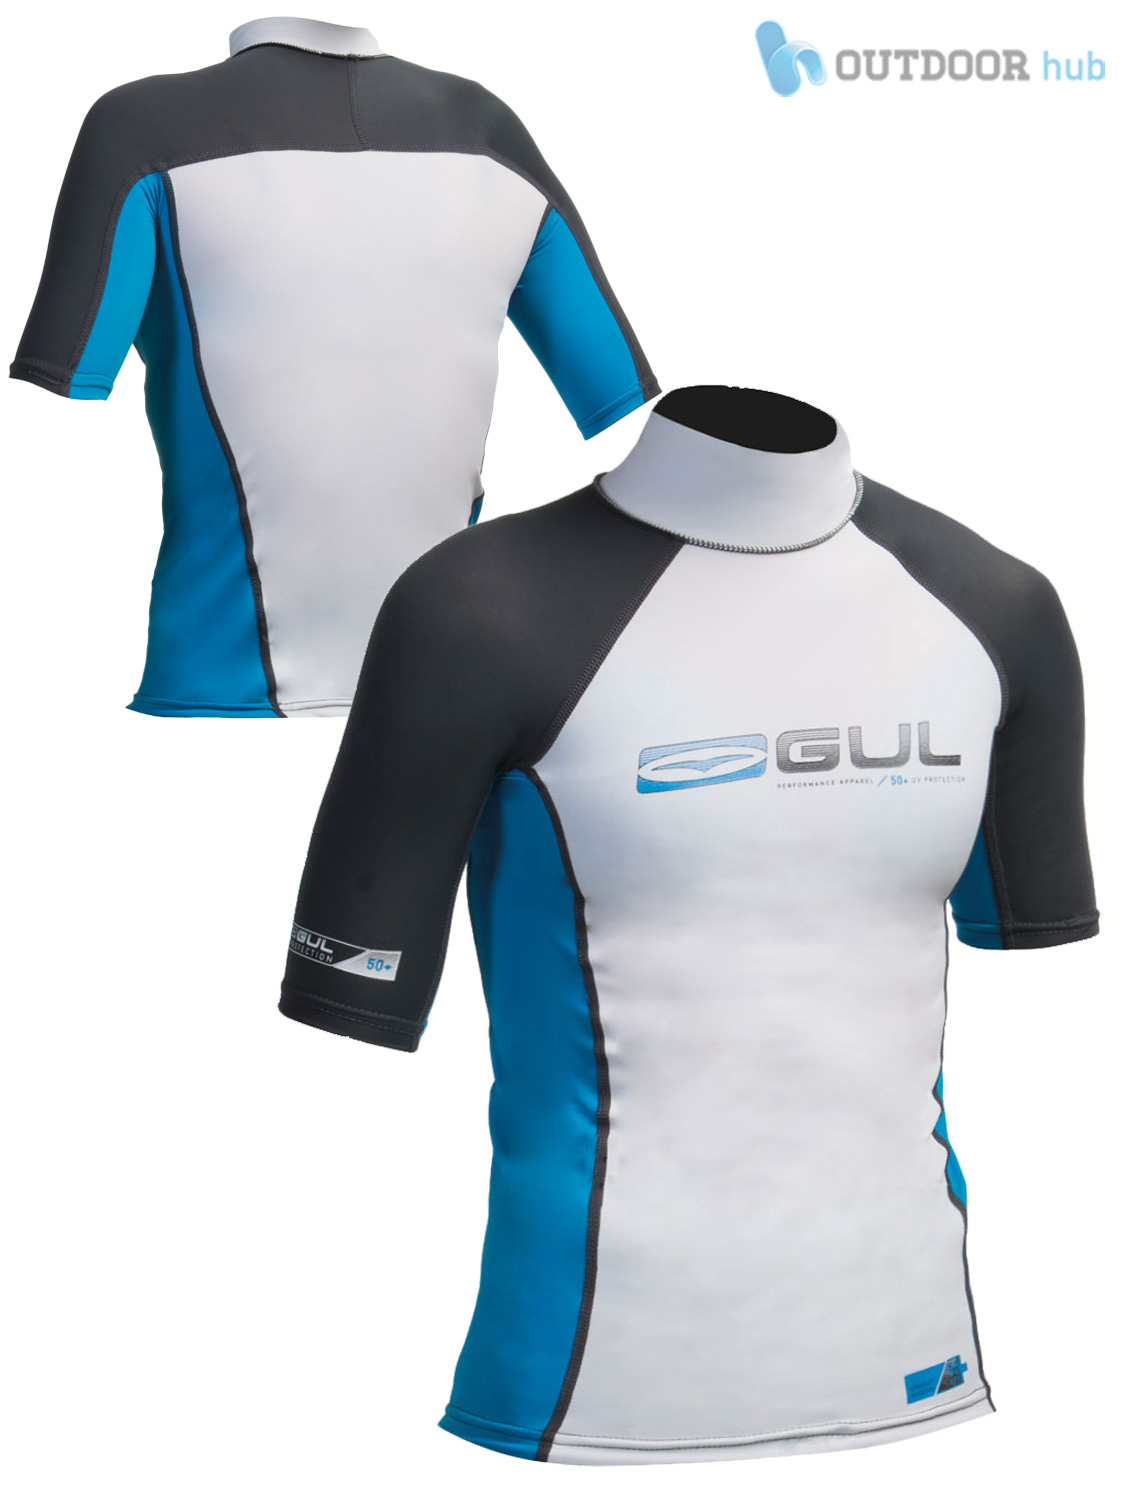 Gul boys short sleeve rash vest guard watersports beach swim uv sun wetsuit kids ebay for Rash after swimming in pool pictures